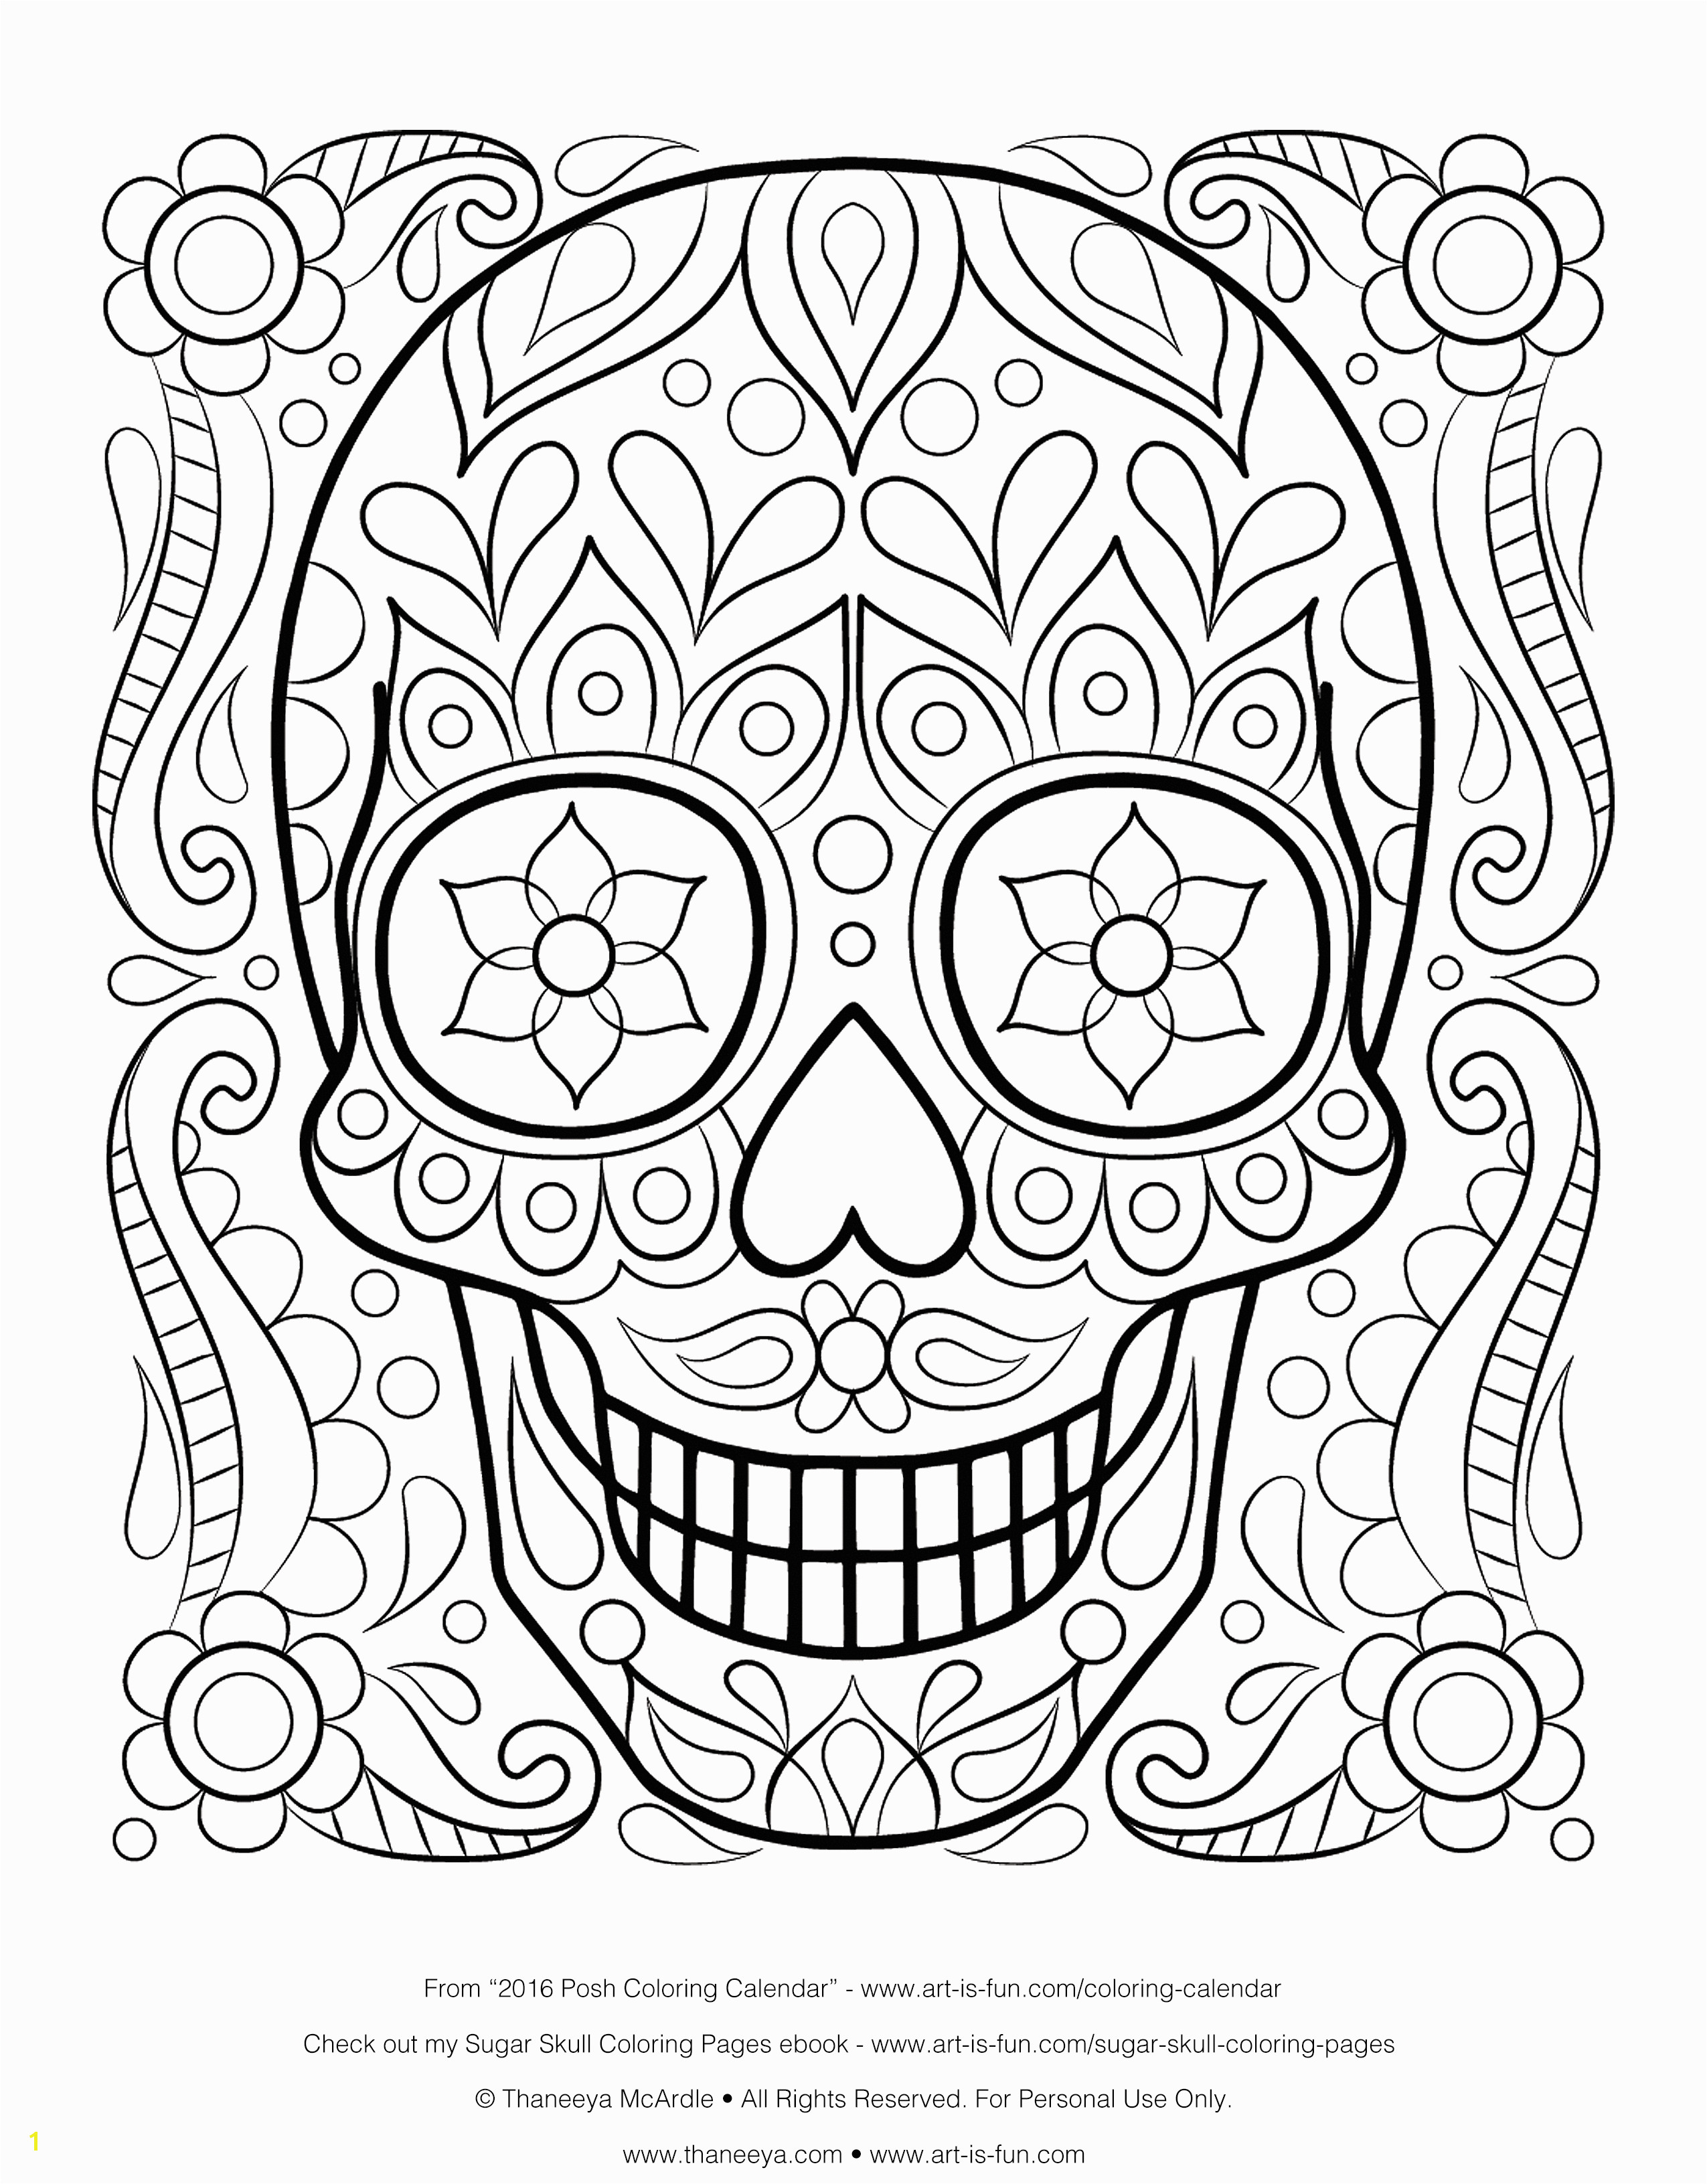 Free Printable Sugar Skull Coloring Pages Free Sugar Skull Coloring Page Printable Day Of the Dead Coloring